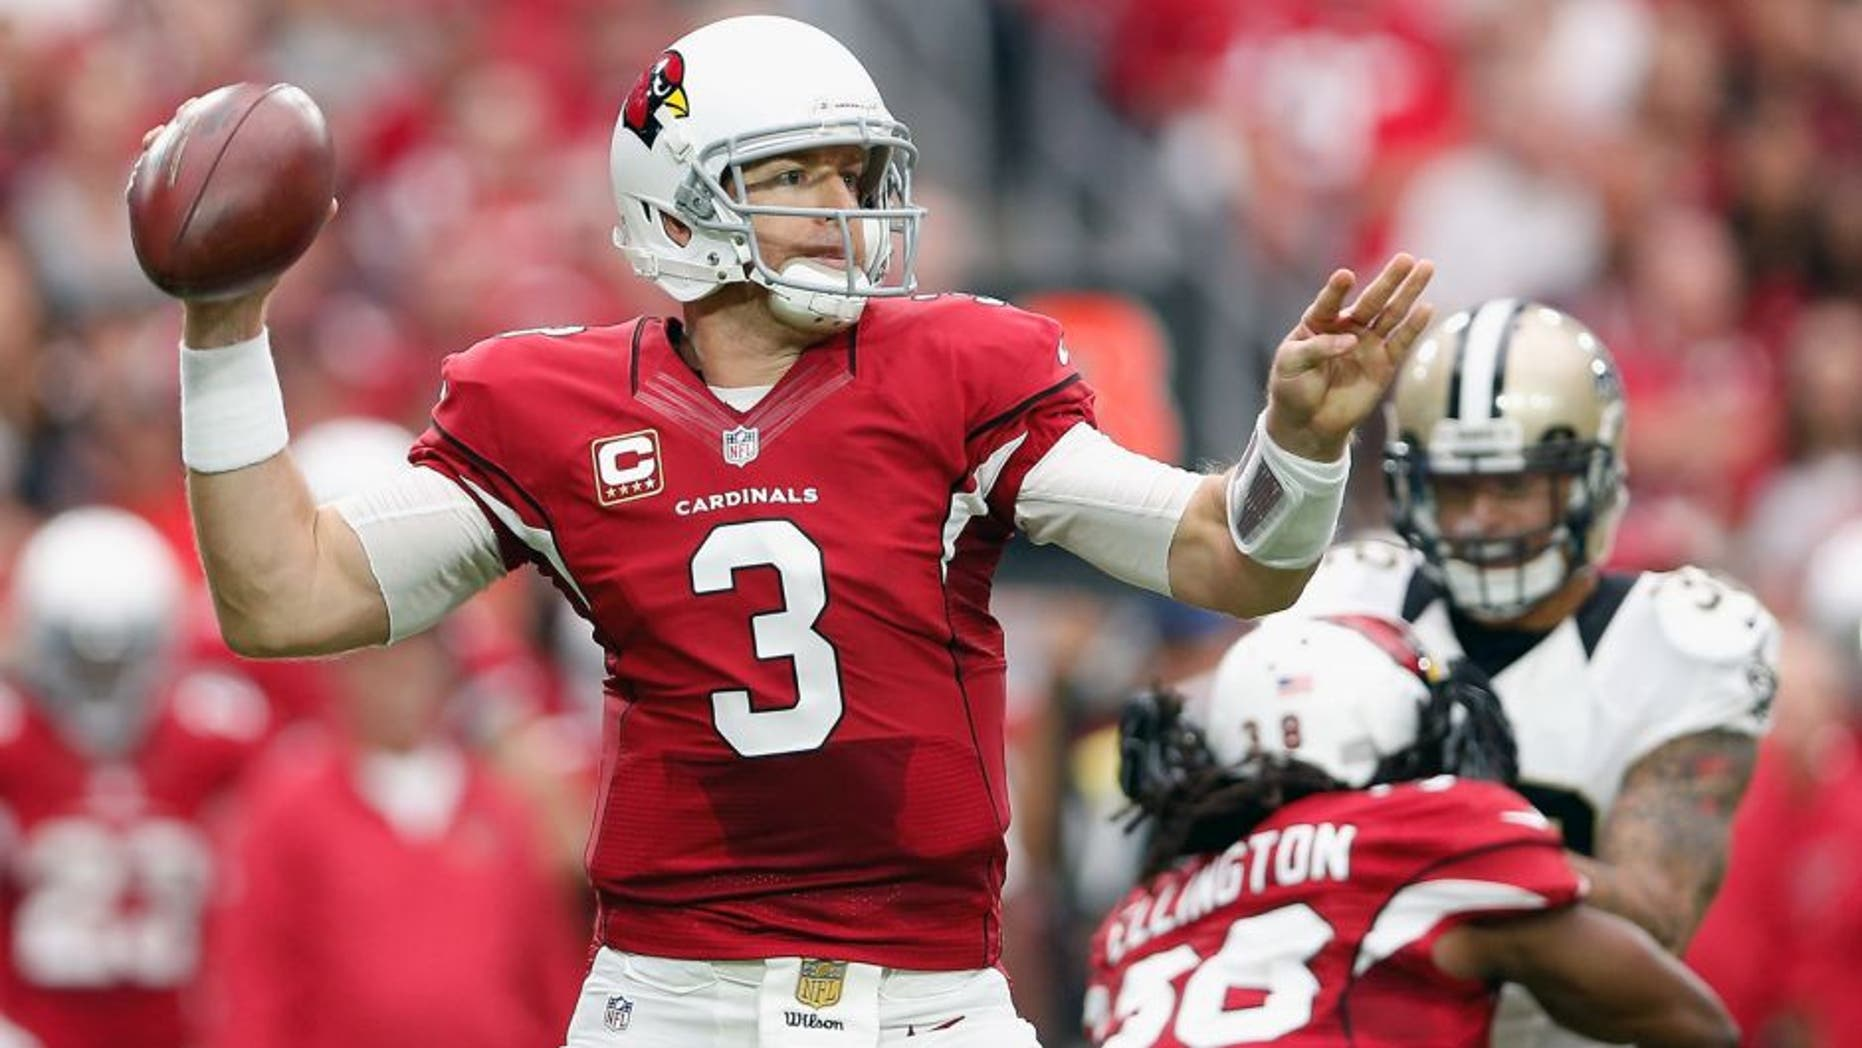 GLENDALE, AZ - SEPTEMBER 13: Quarterback Carson Palmer #3 of the Arizona Cardinals throws a pass during the first half of the NFL game against the New Orleans Saints at the University of Phoenix Stadium on September 13, 2015 in Glendale, Arizona. (Photo by Christian Petersen/Getty Images)